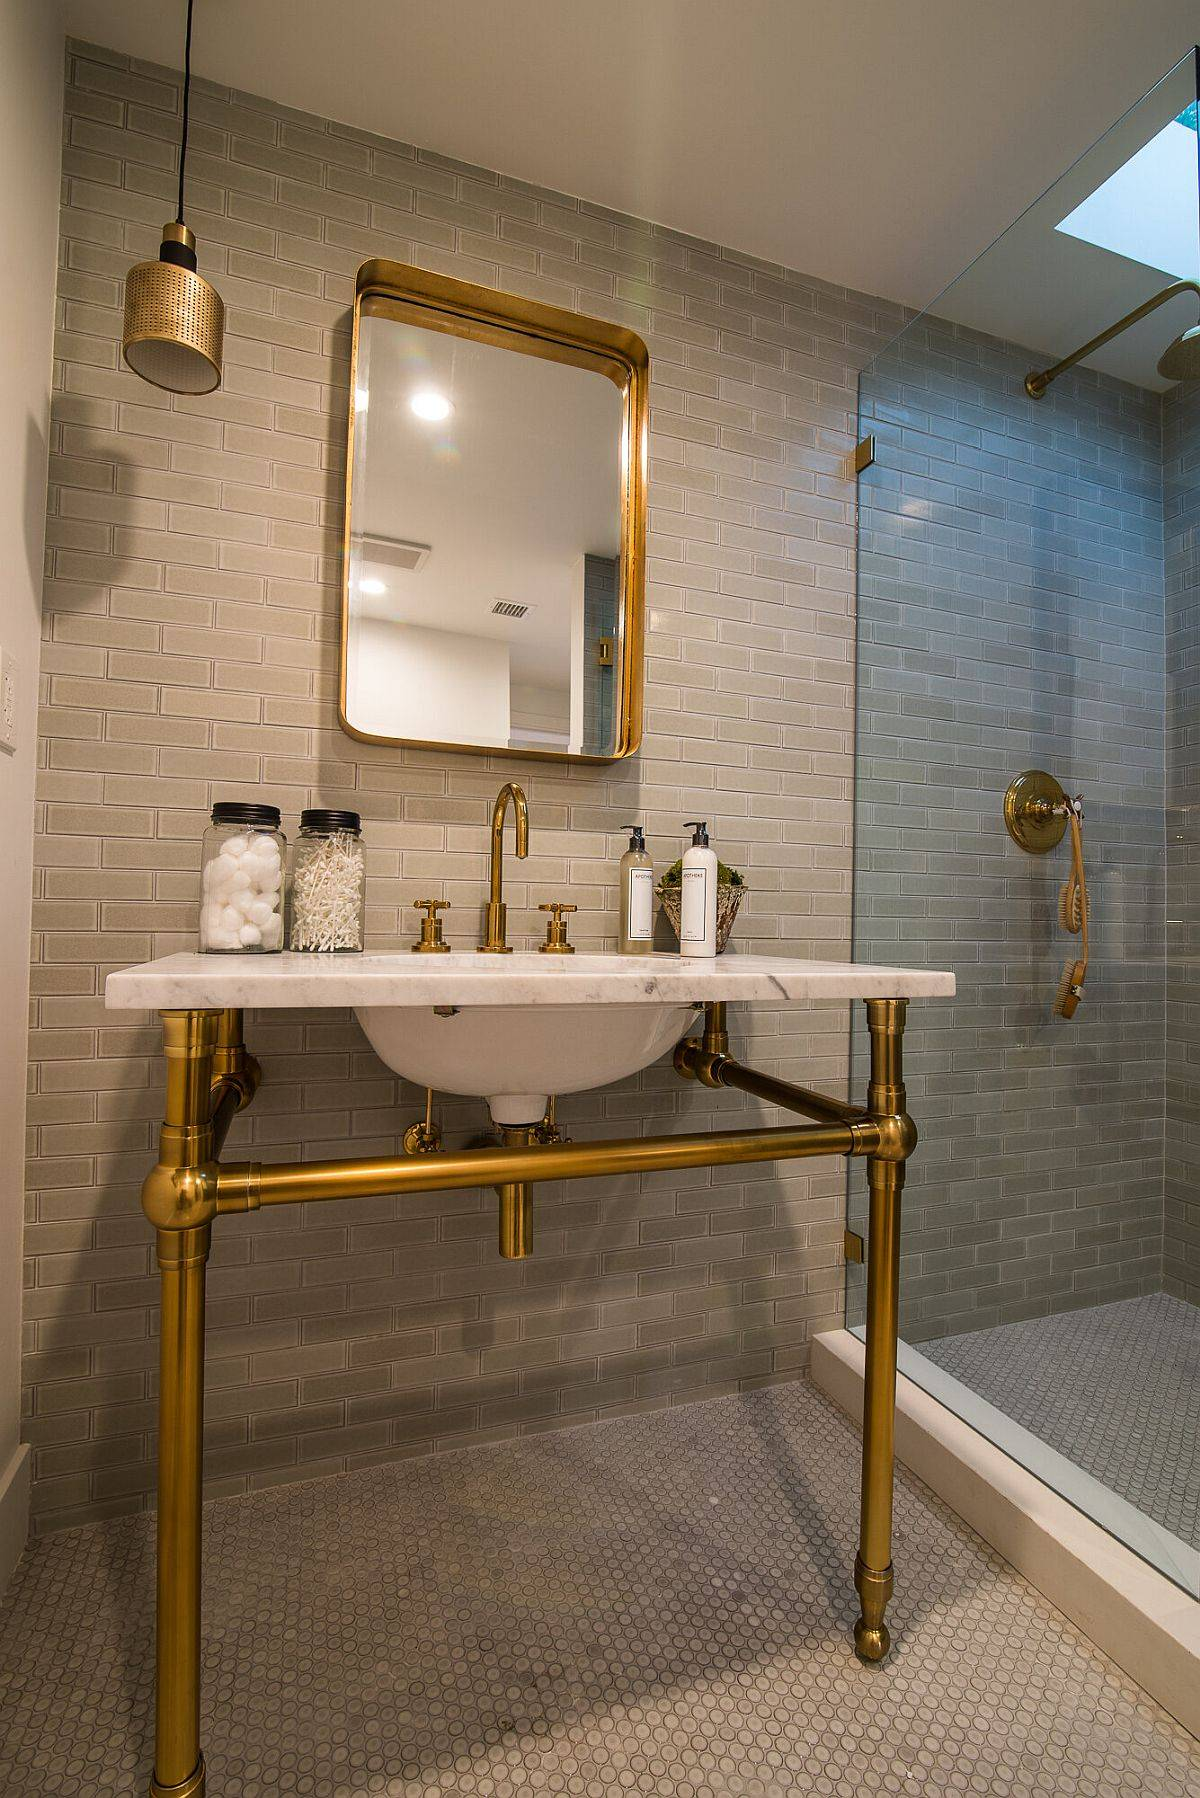 Bathroom with Spanish tile and sink that fetaures a gold base